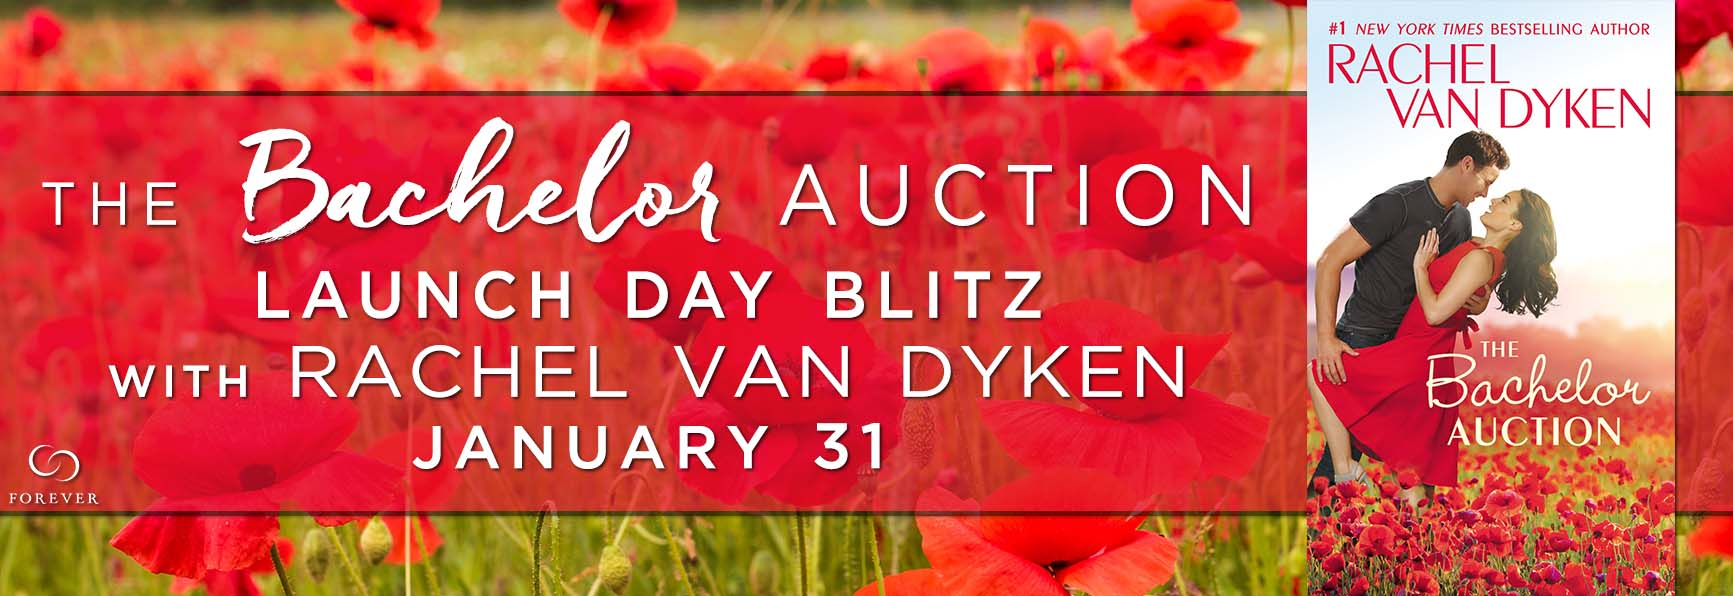 GIVEAWAY – The Bachelor Auction by Rachel Van Dyken